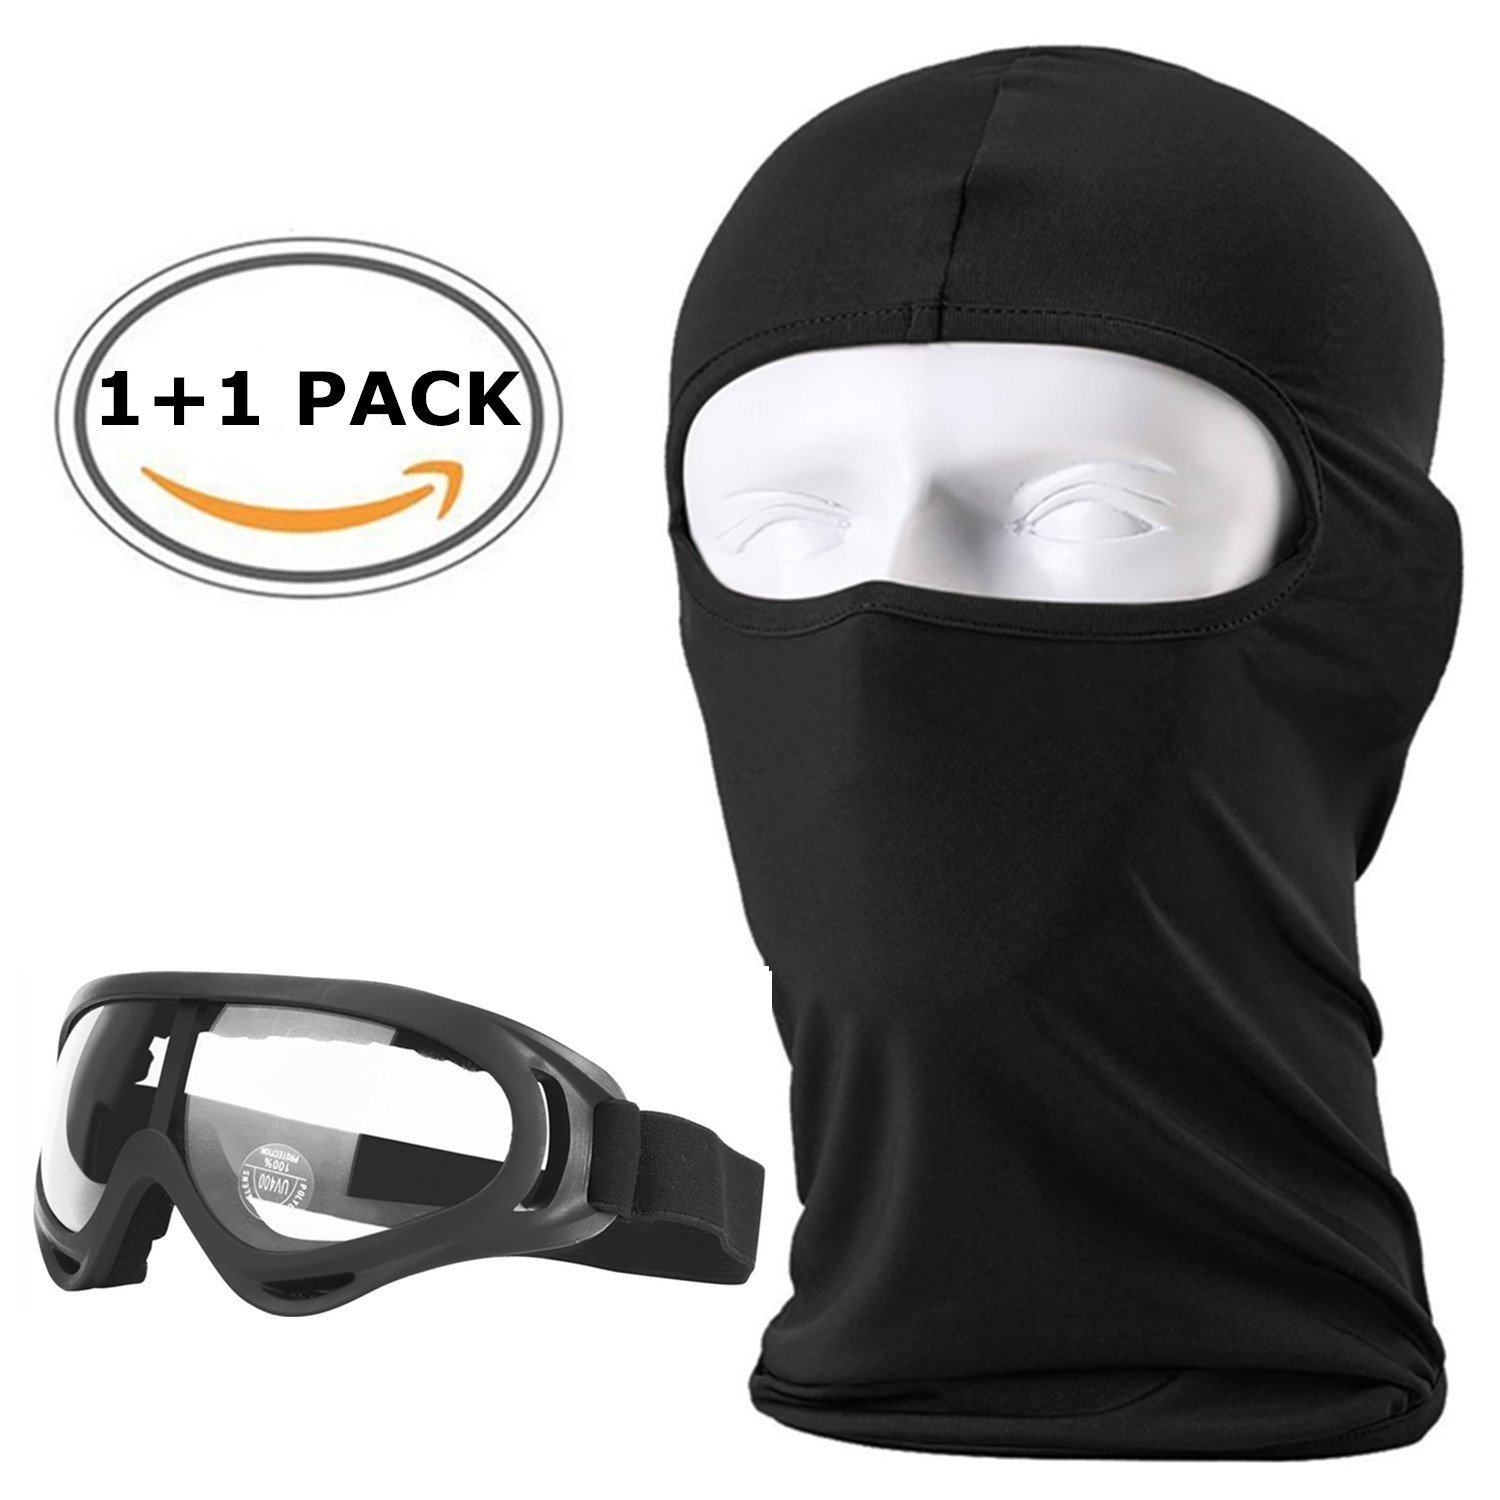 c6f8c3ce6795 Cheap Kids Ski Mask